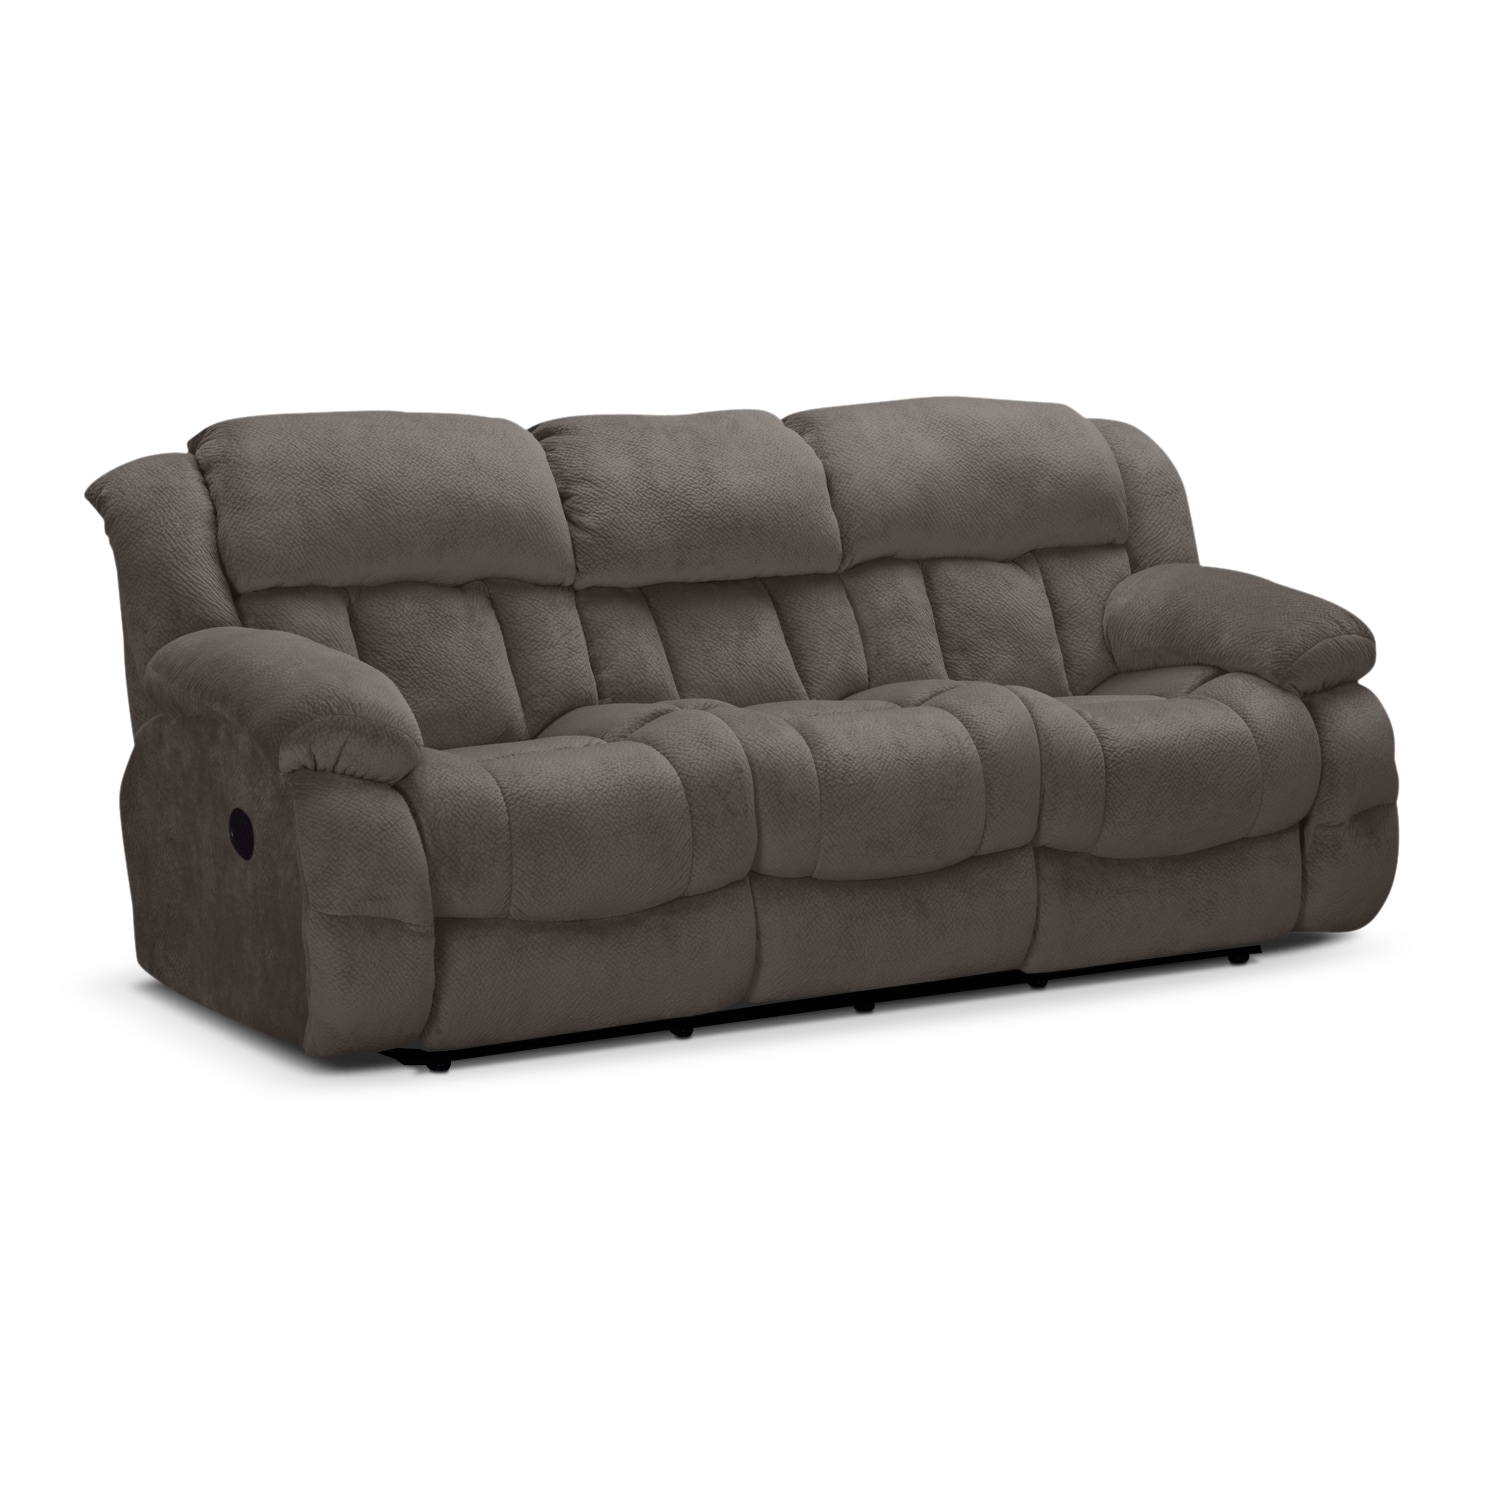 Park City Dual Reclining Sofa - Gray | Value City Furniture